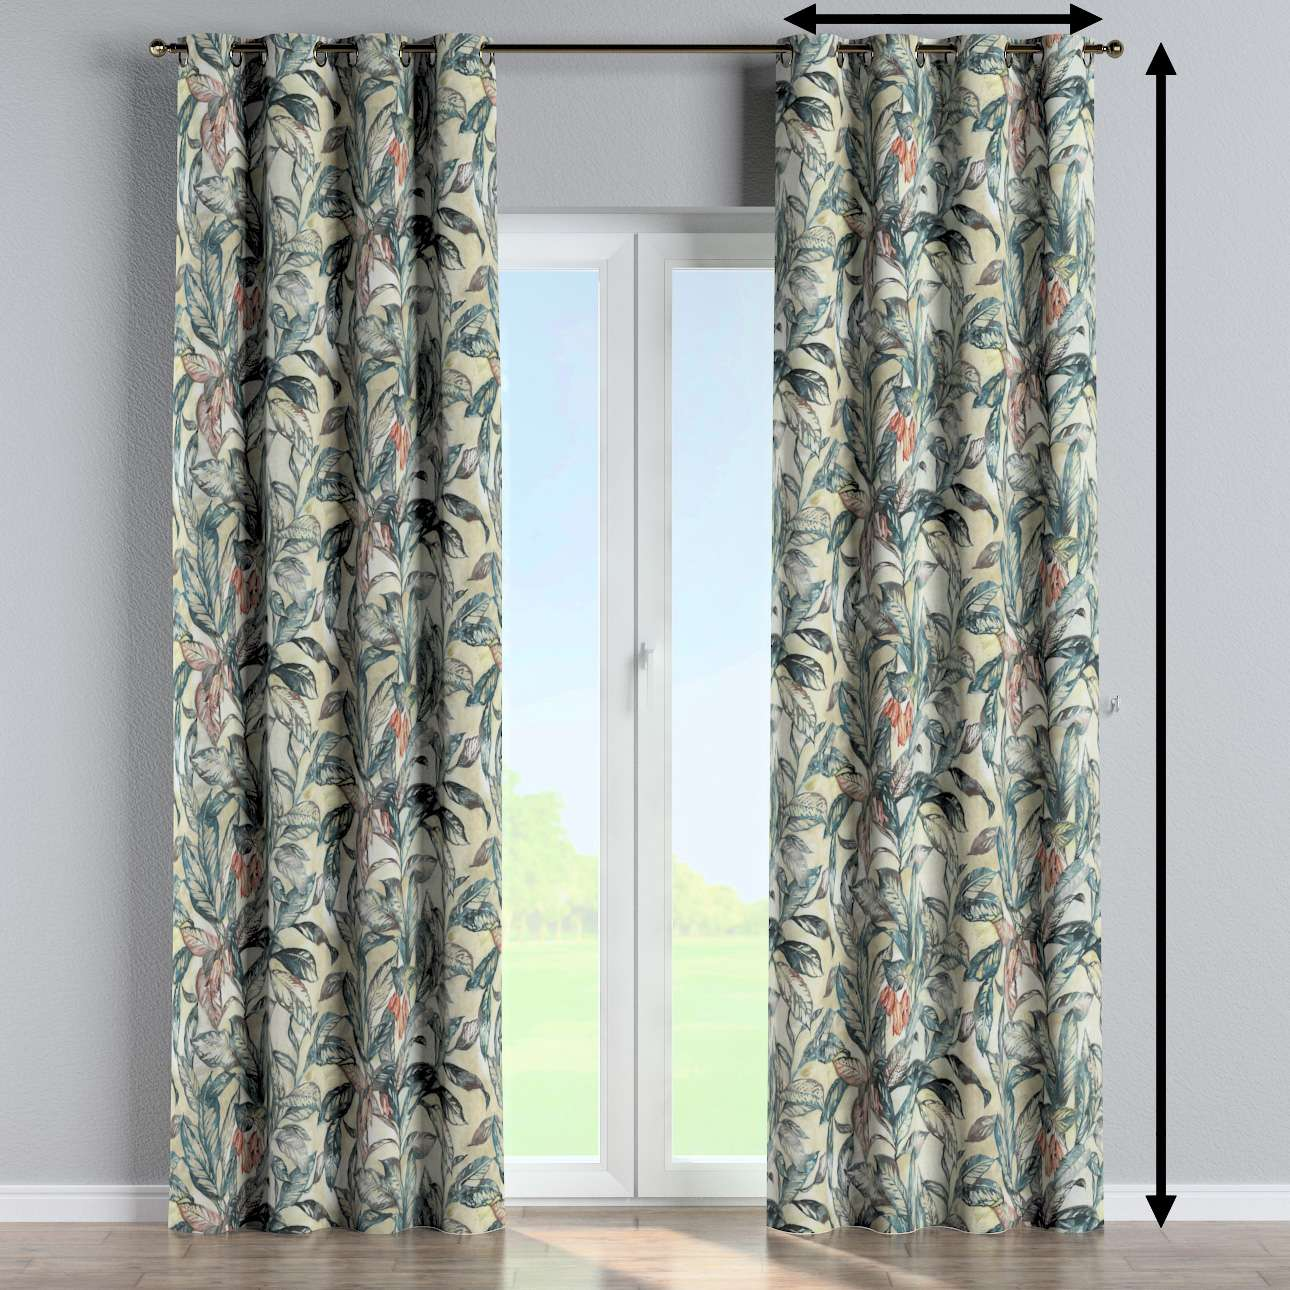 Eyelet curtain in collection Abigail, fabric: 143-08